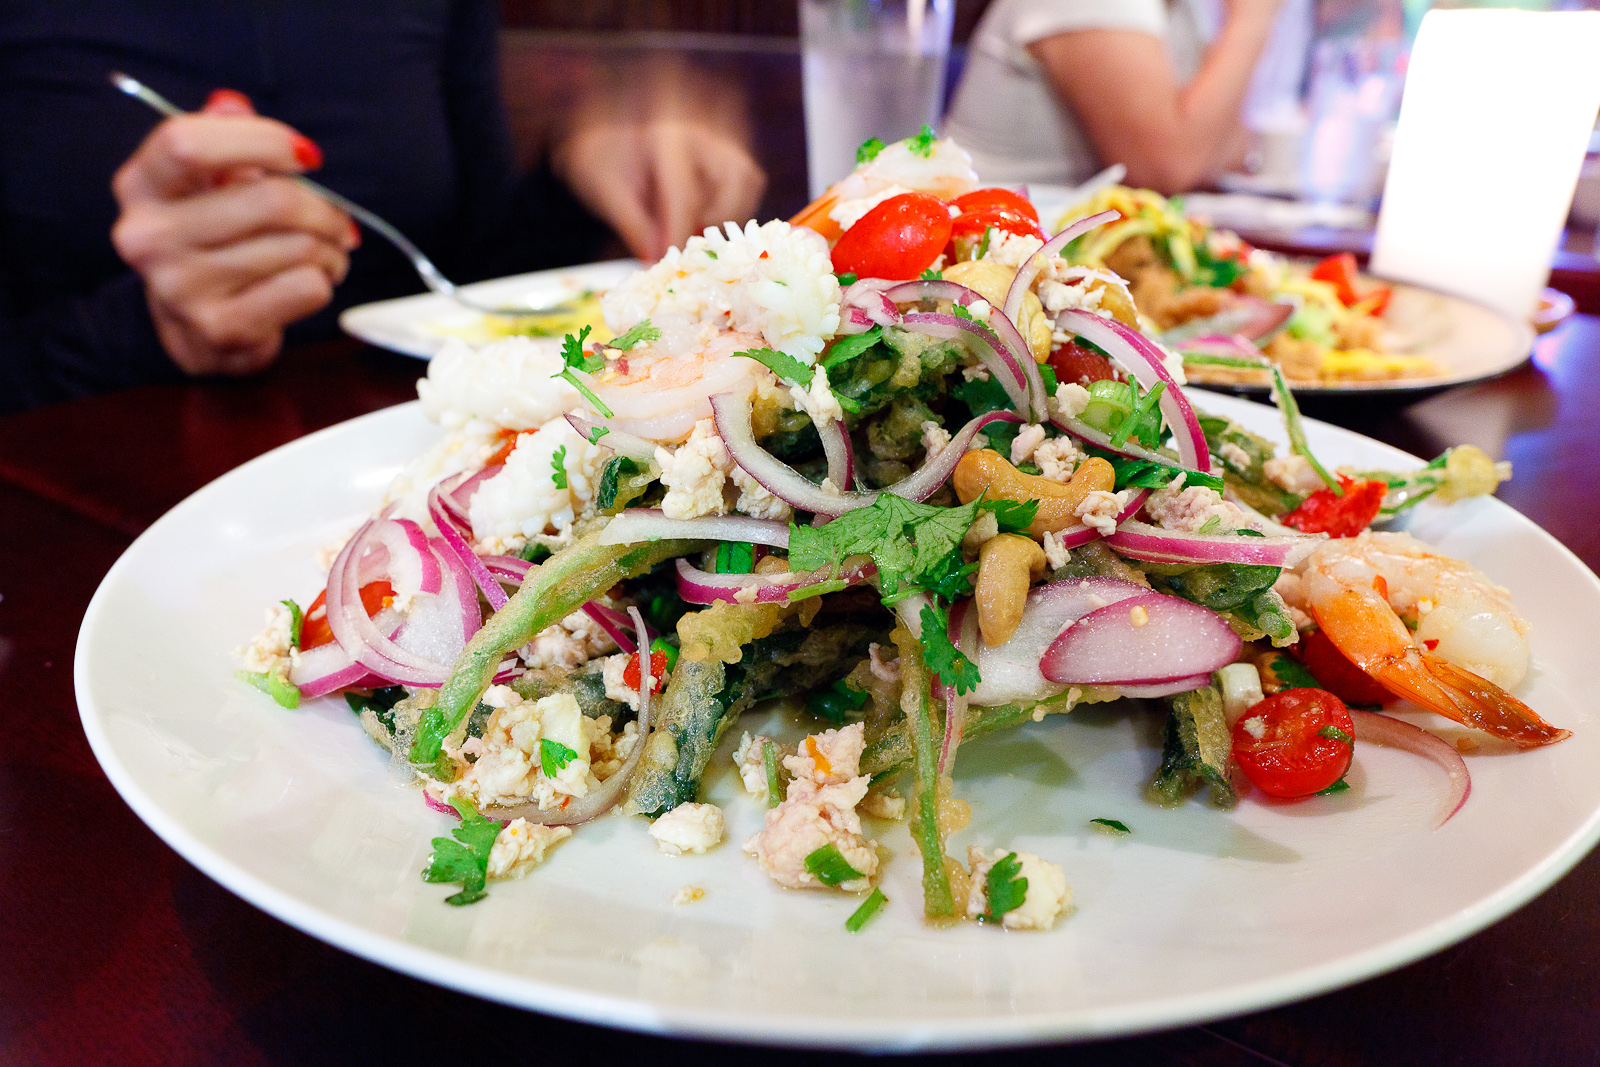 Crispy Chinese watercress salad with chicken, squid, shrimp, and spicy lime dressing ($15)